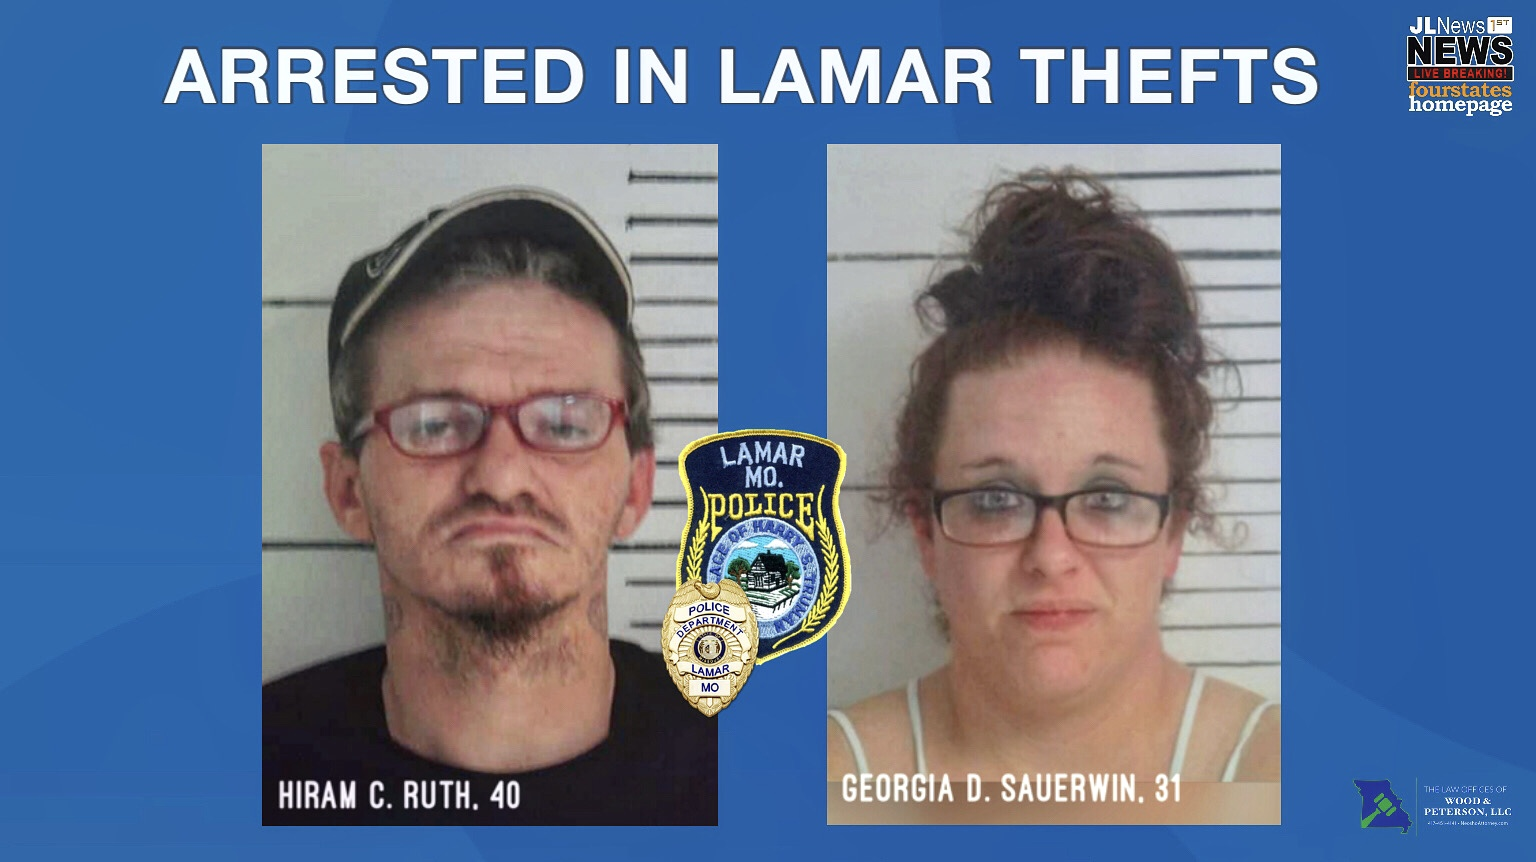 Two Arrested Related to Lamar Thefts; Charges Submitted to ...